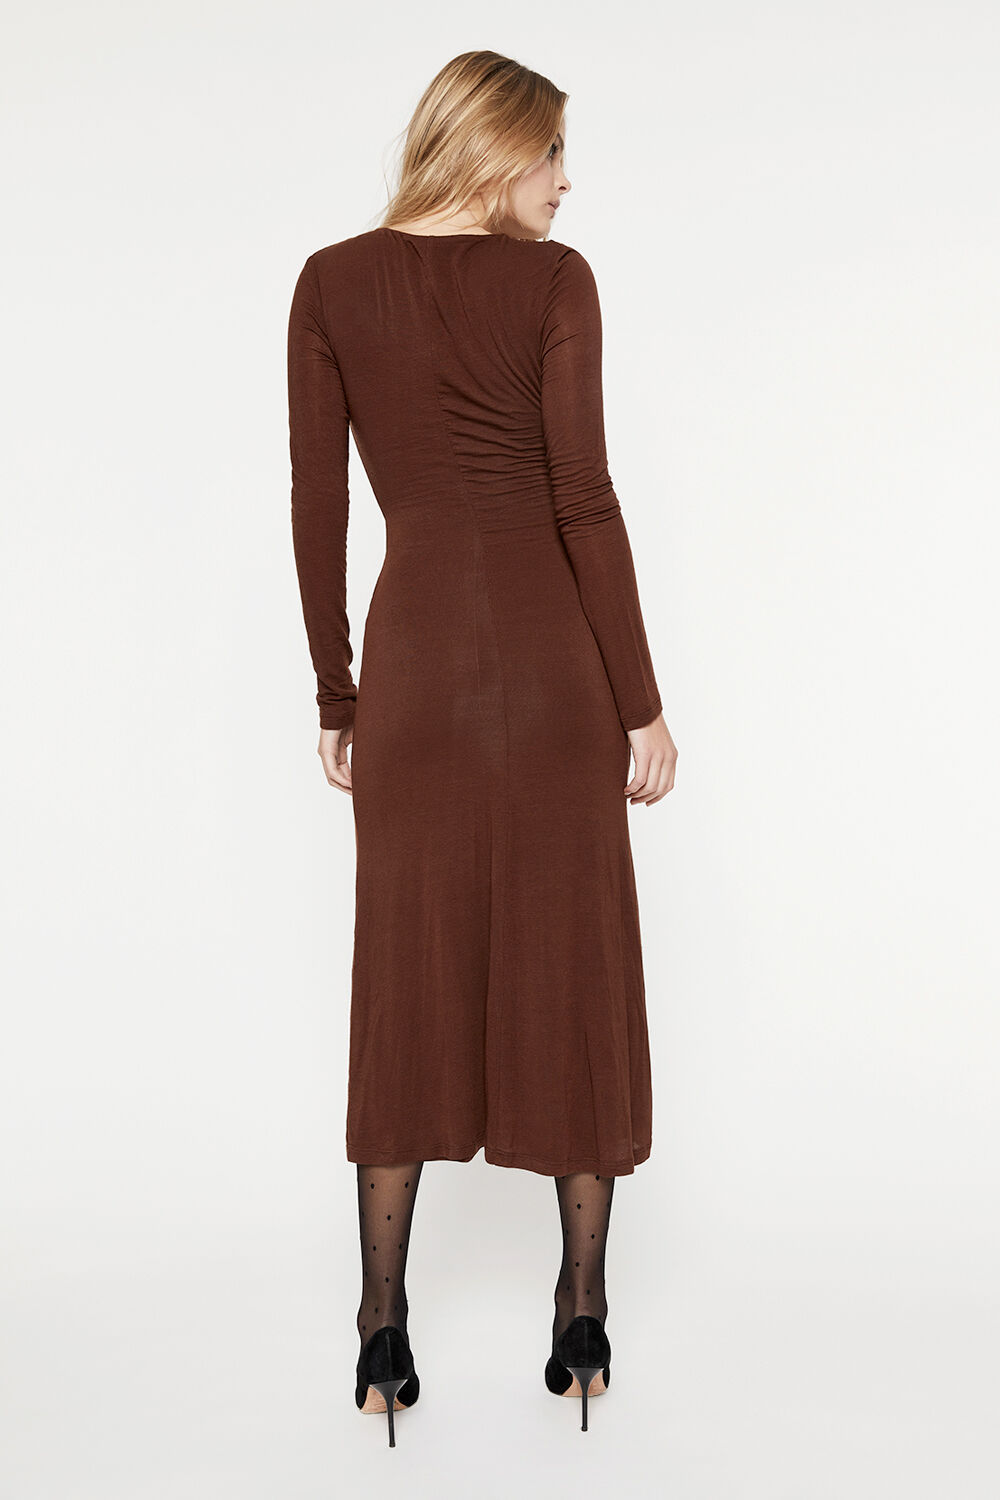 RUCHED JERSEY DRESS in colour CHOCOLATE BROWN